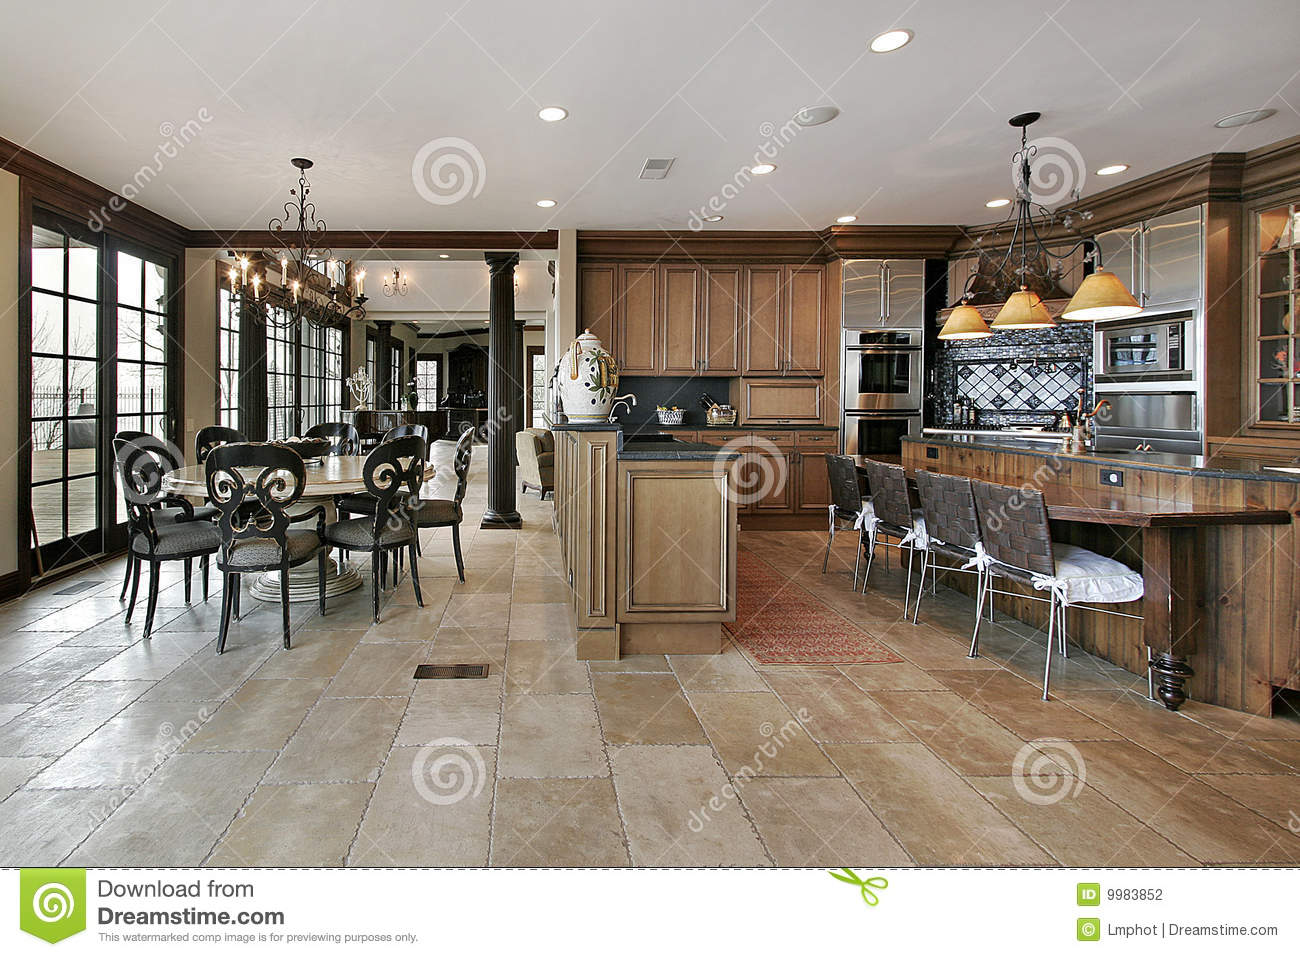 Best Kitchen Gallery: Country Kitchen In Luxury Home Stock Photo Image Of Interior of Luxury Country Kitchens on rachelxblog.com